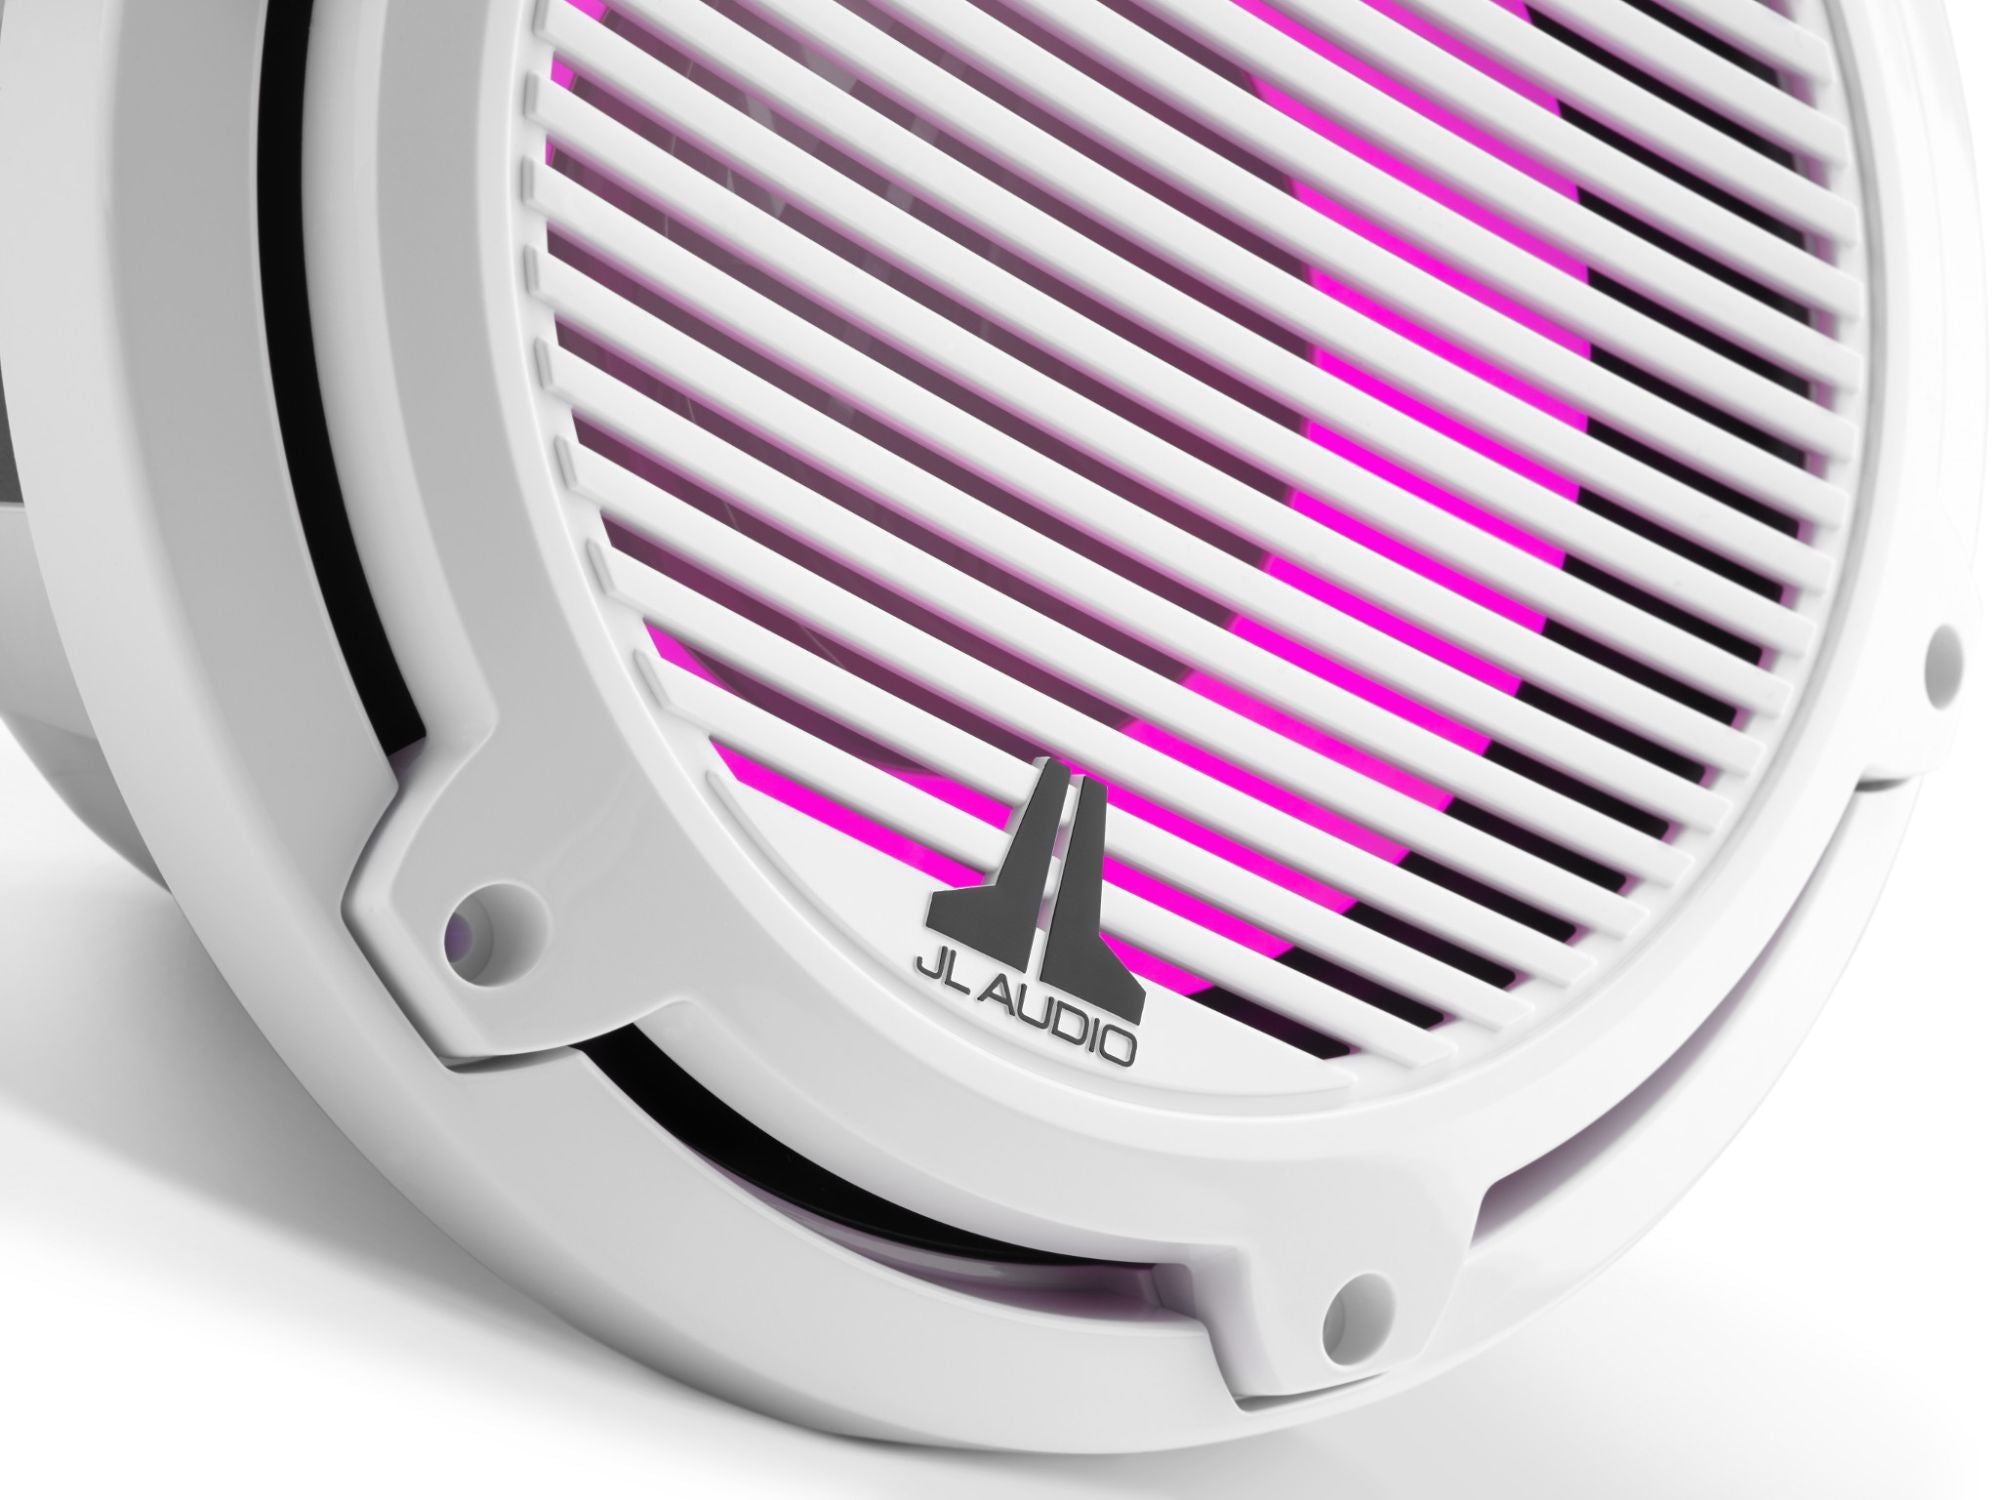 Detail of M6-10IB-C-GwGw-i-4 Subwoofer Lit with Pink